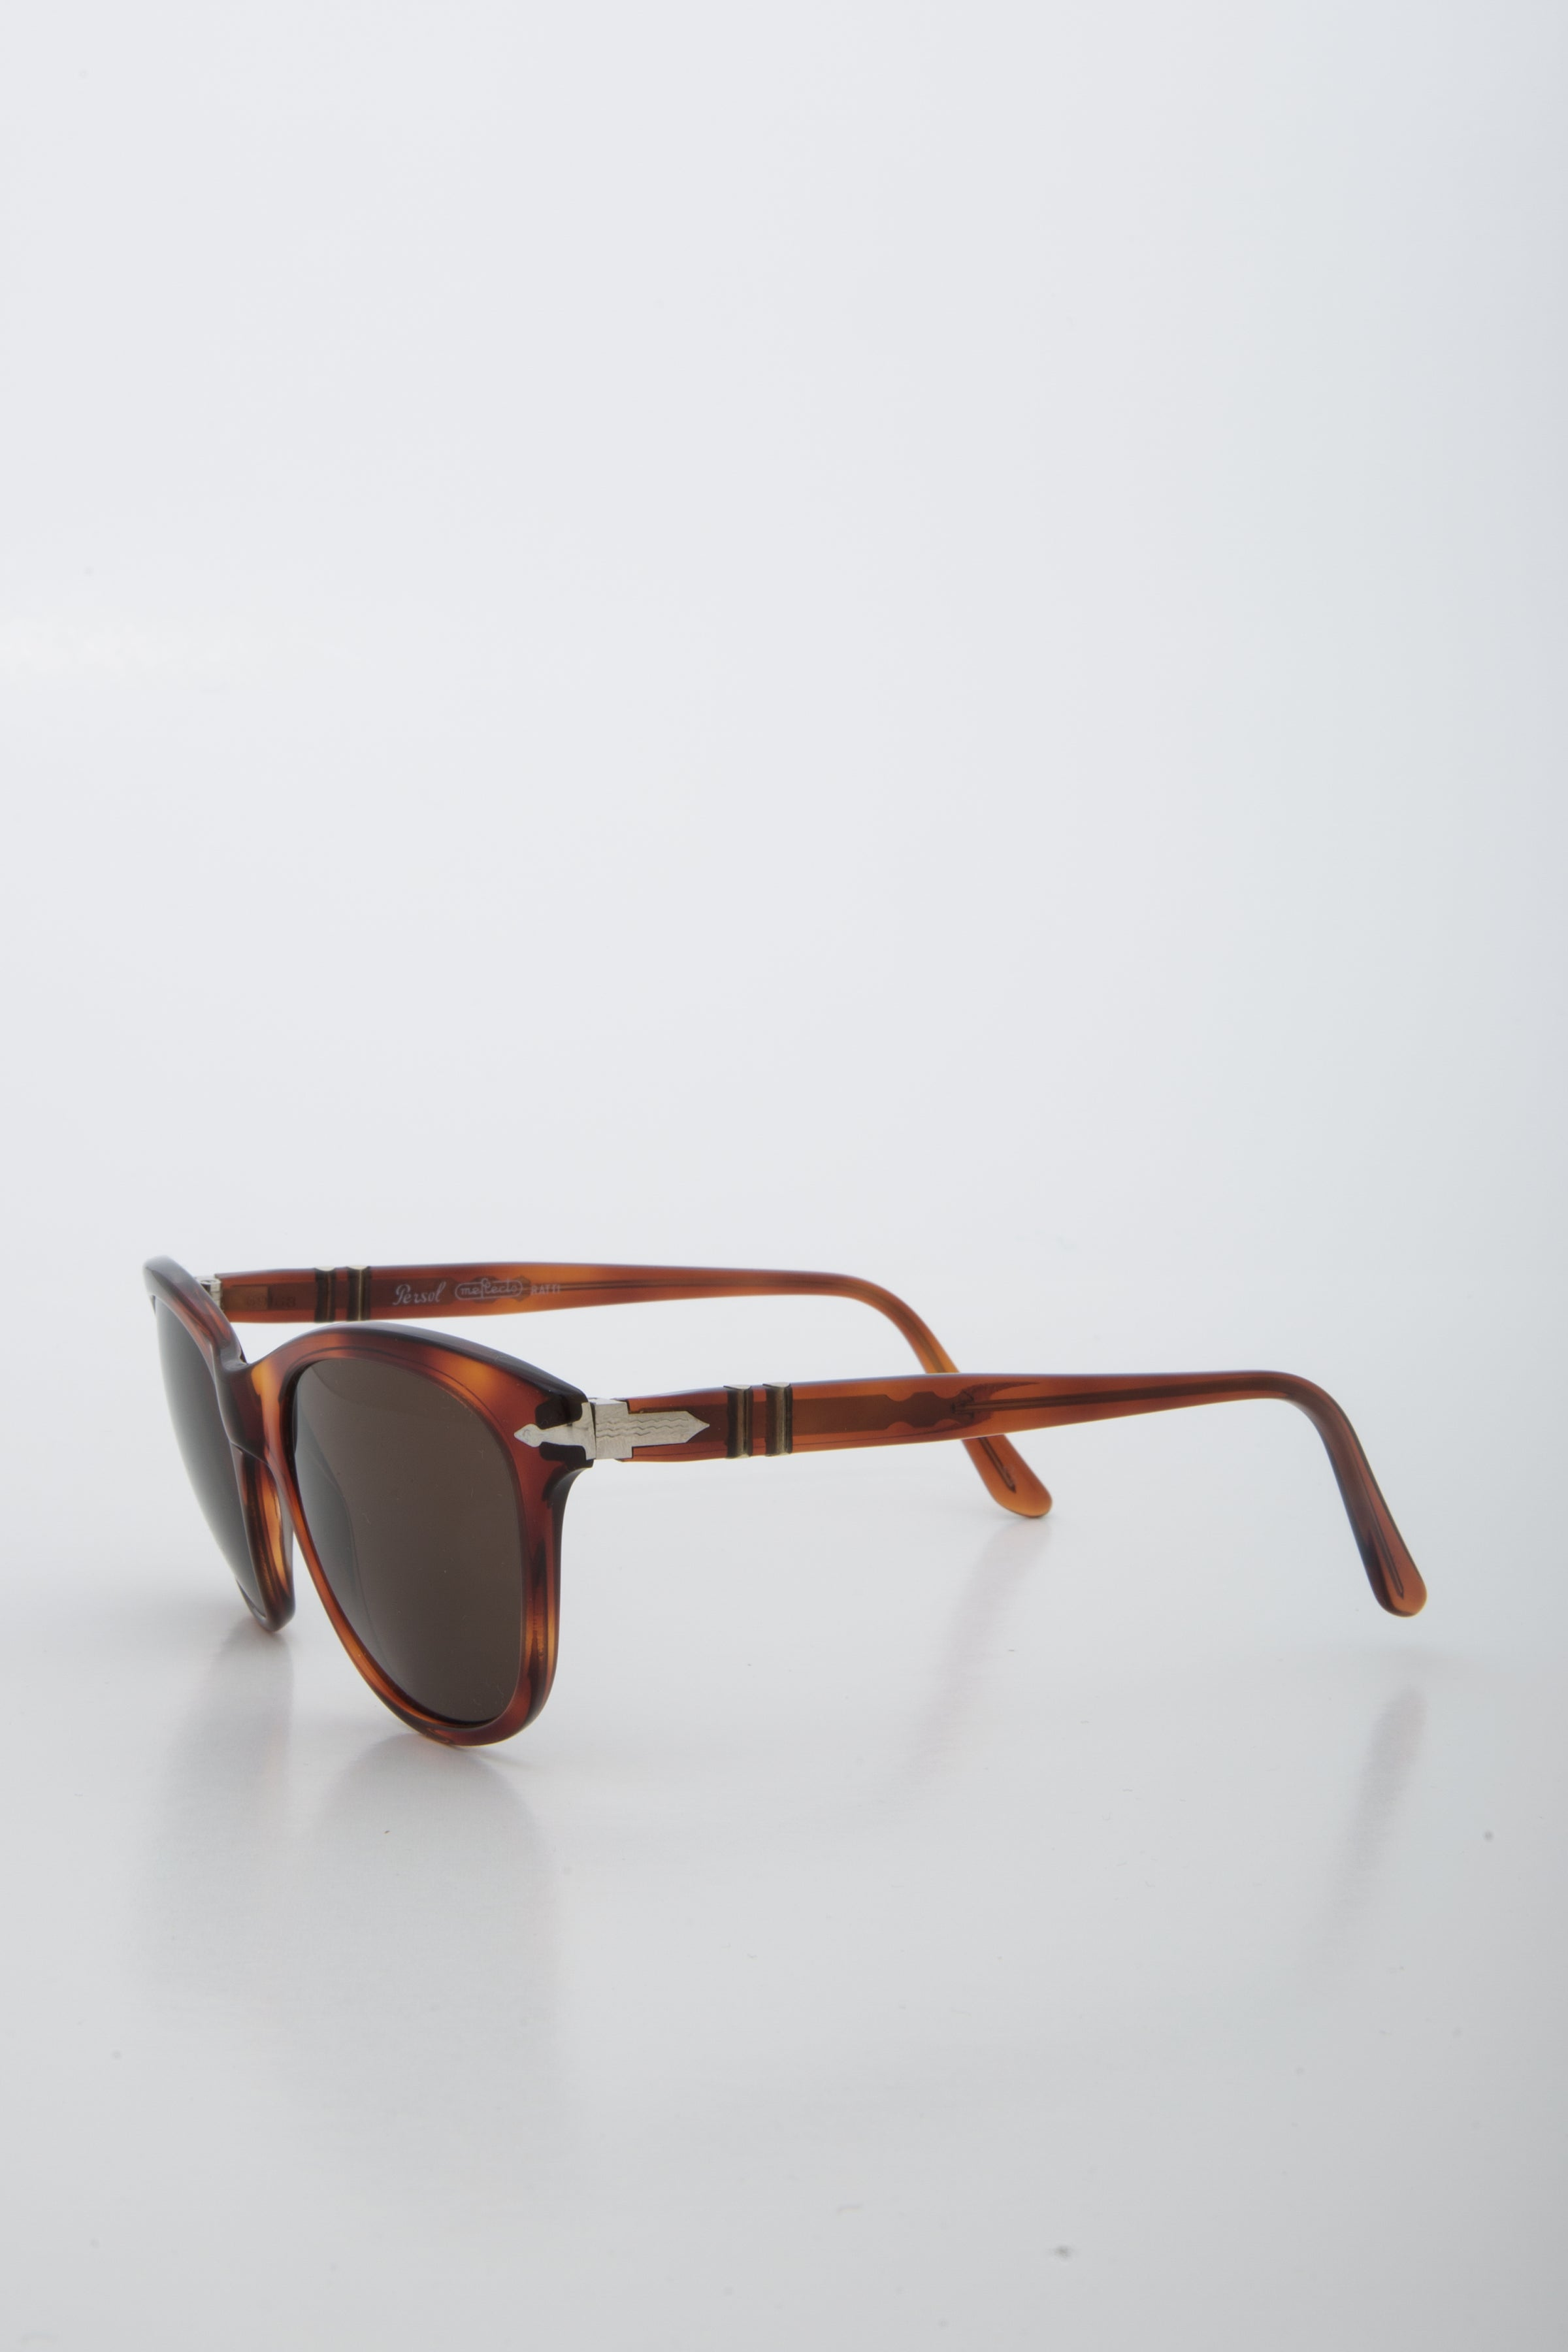 Persol 69168  (Light Brown)